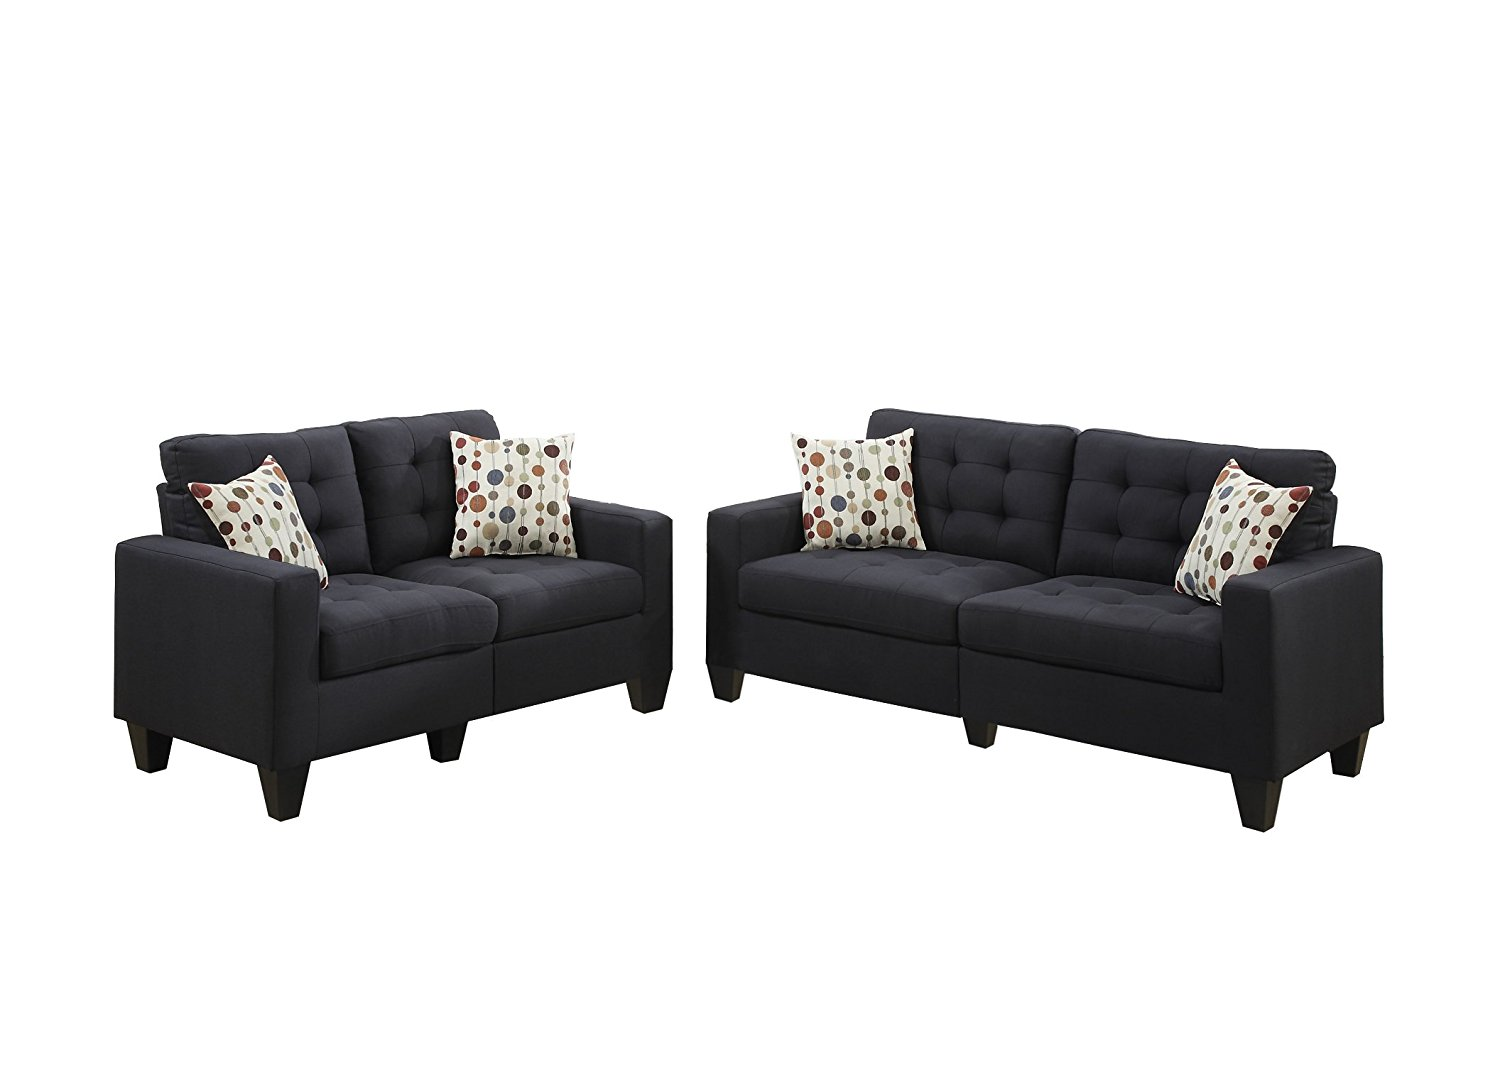 Bobkona windsor elite linen like 2 piece sofa and loveseat for 2 piece furniture set